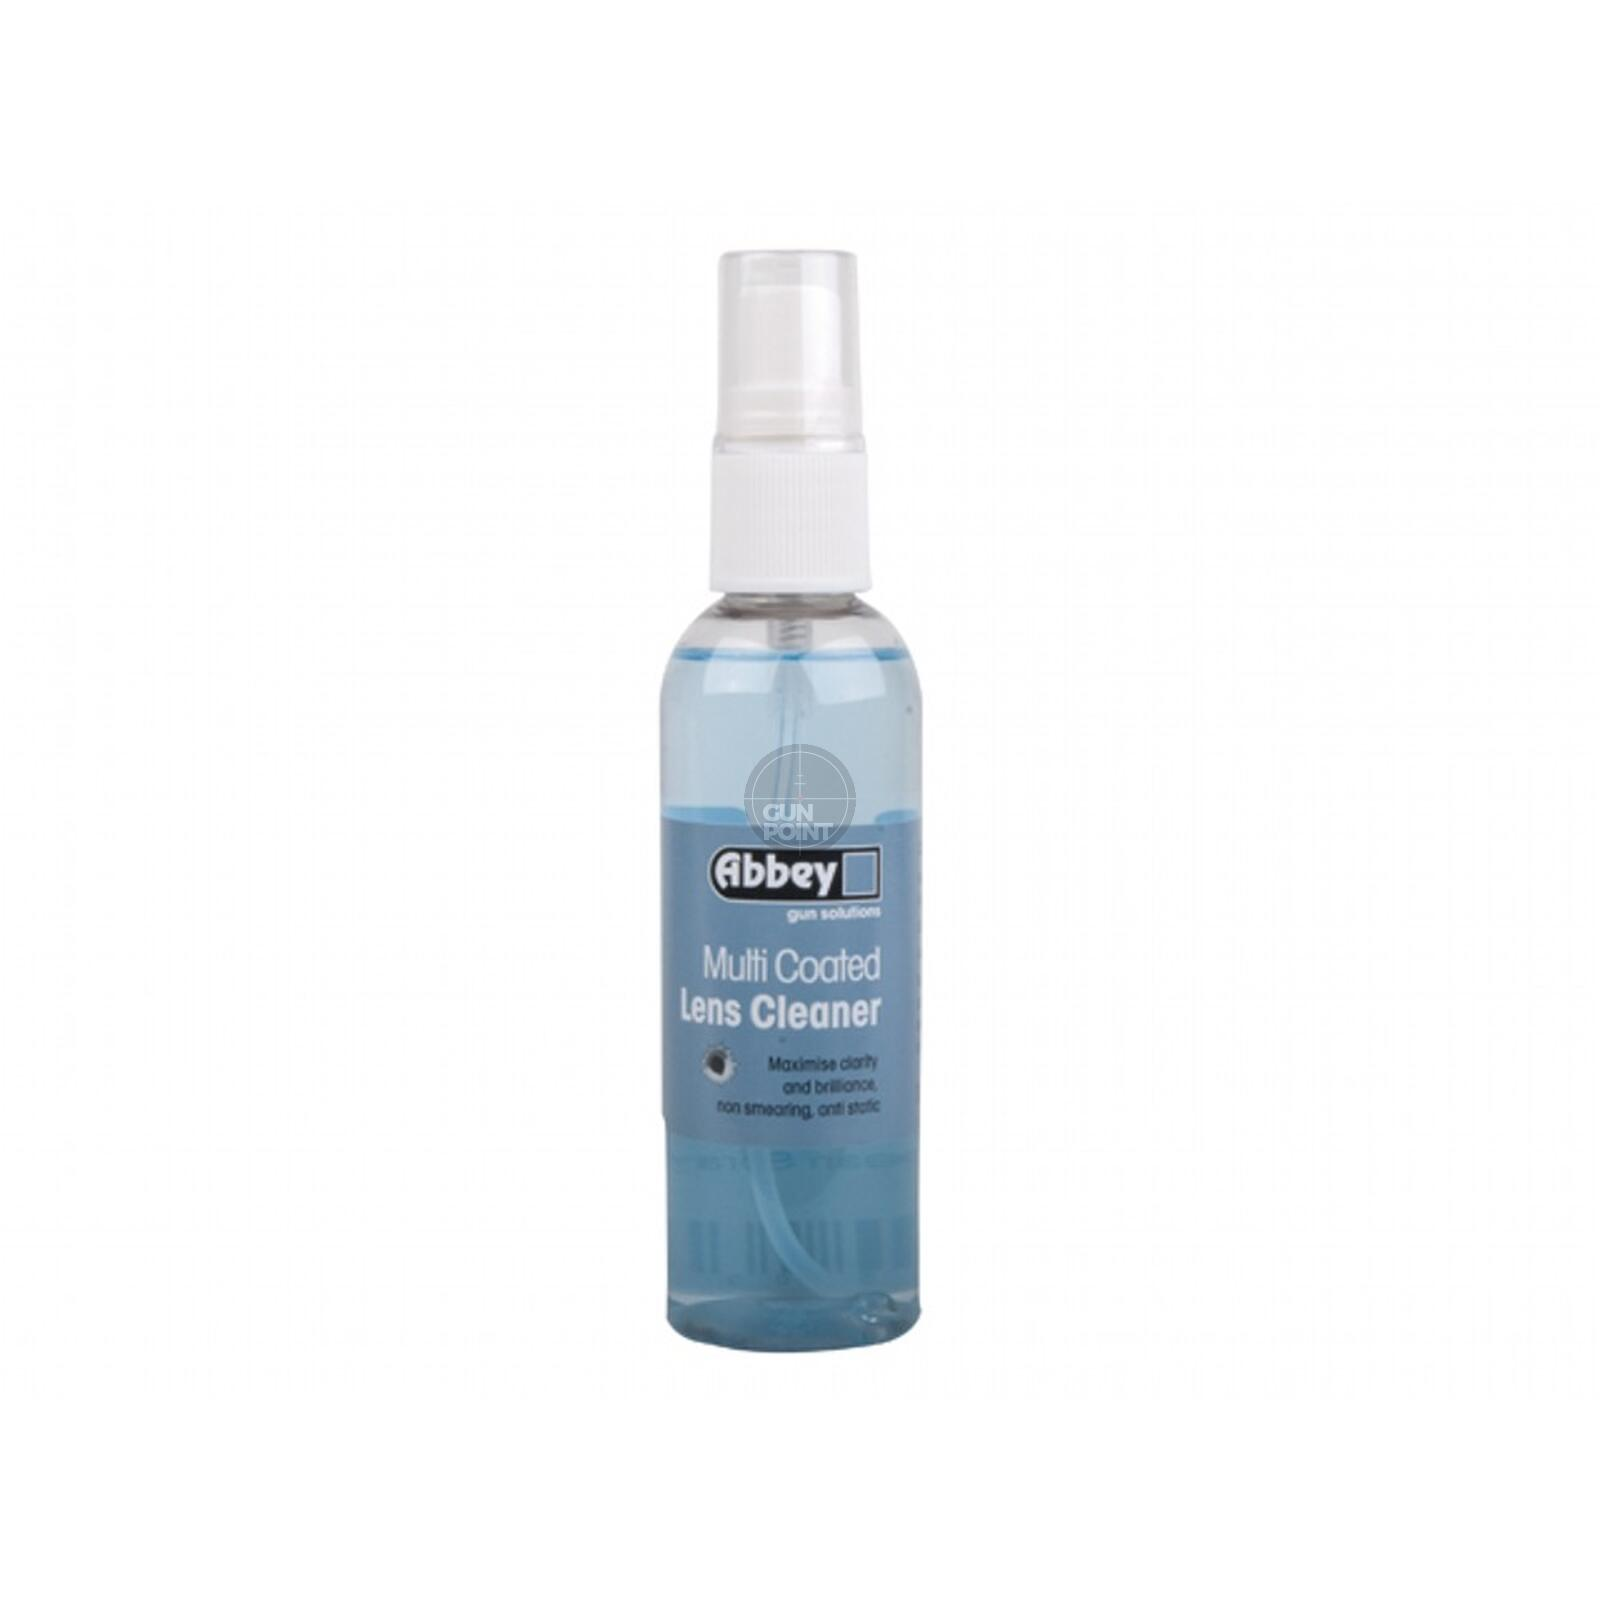 Abbey Lens Clean Spray 100ml